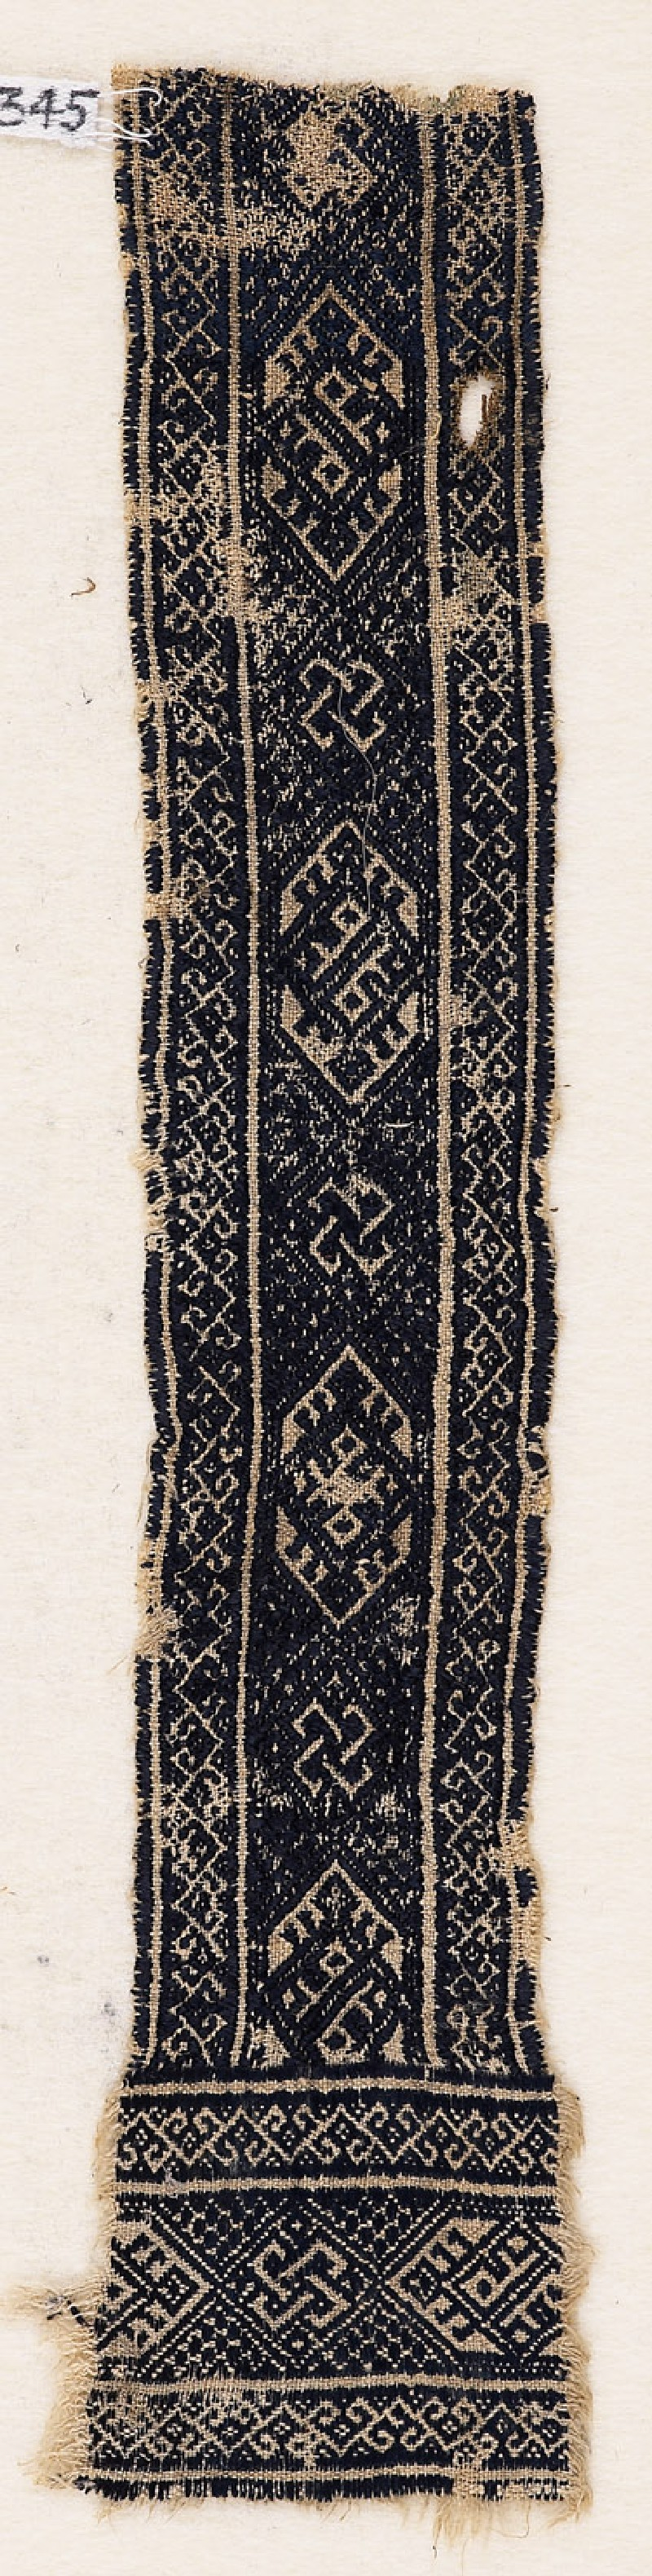 Textile fragment with interlacing knots, cartouches, diamond-shapes, and hooks